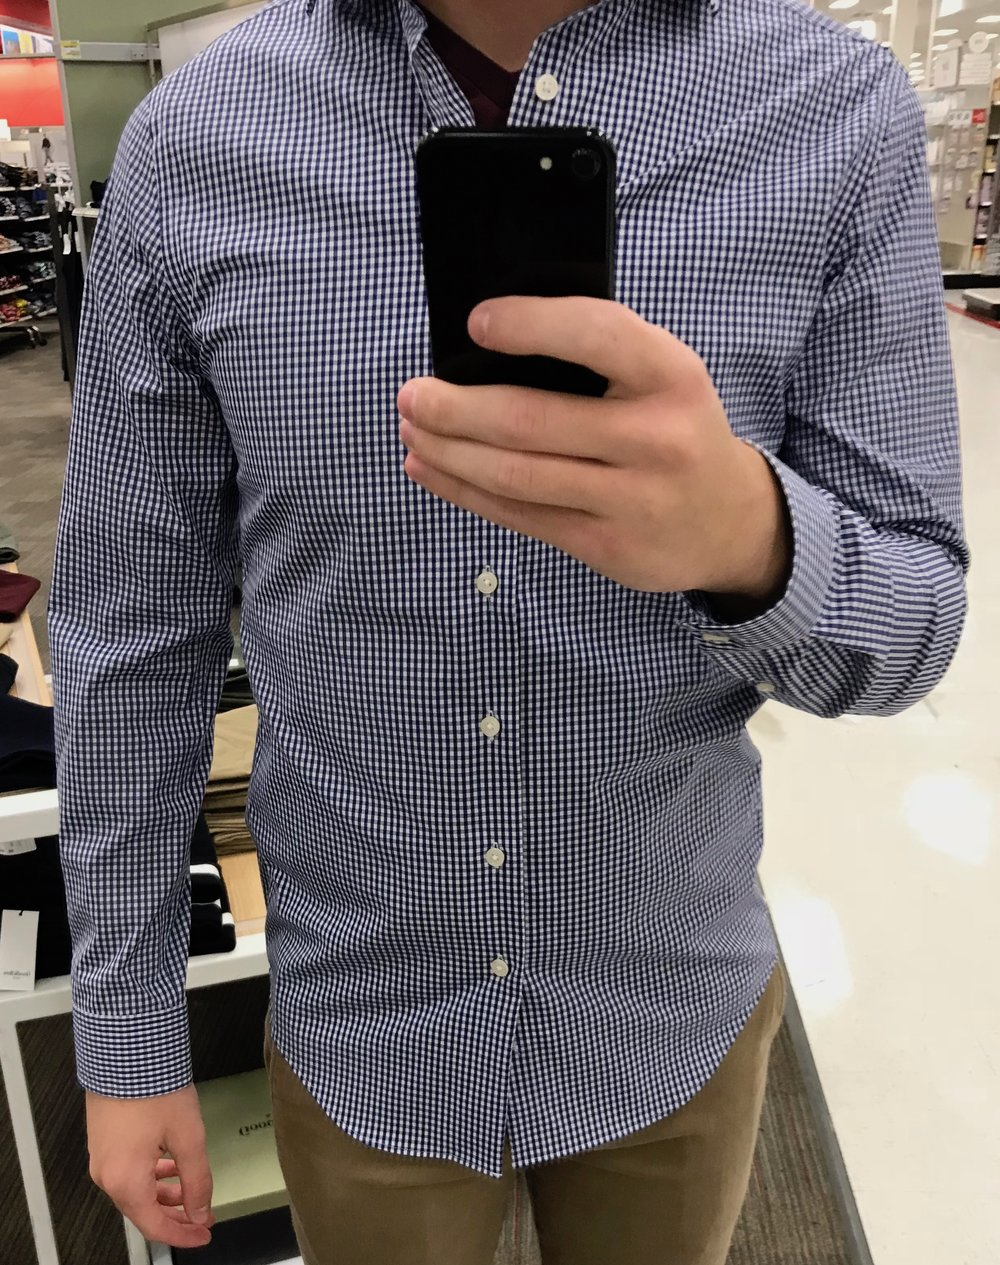 Slim Blue Gingham Dress Shirt - $29.99